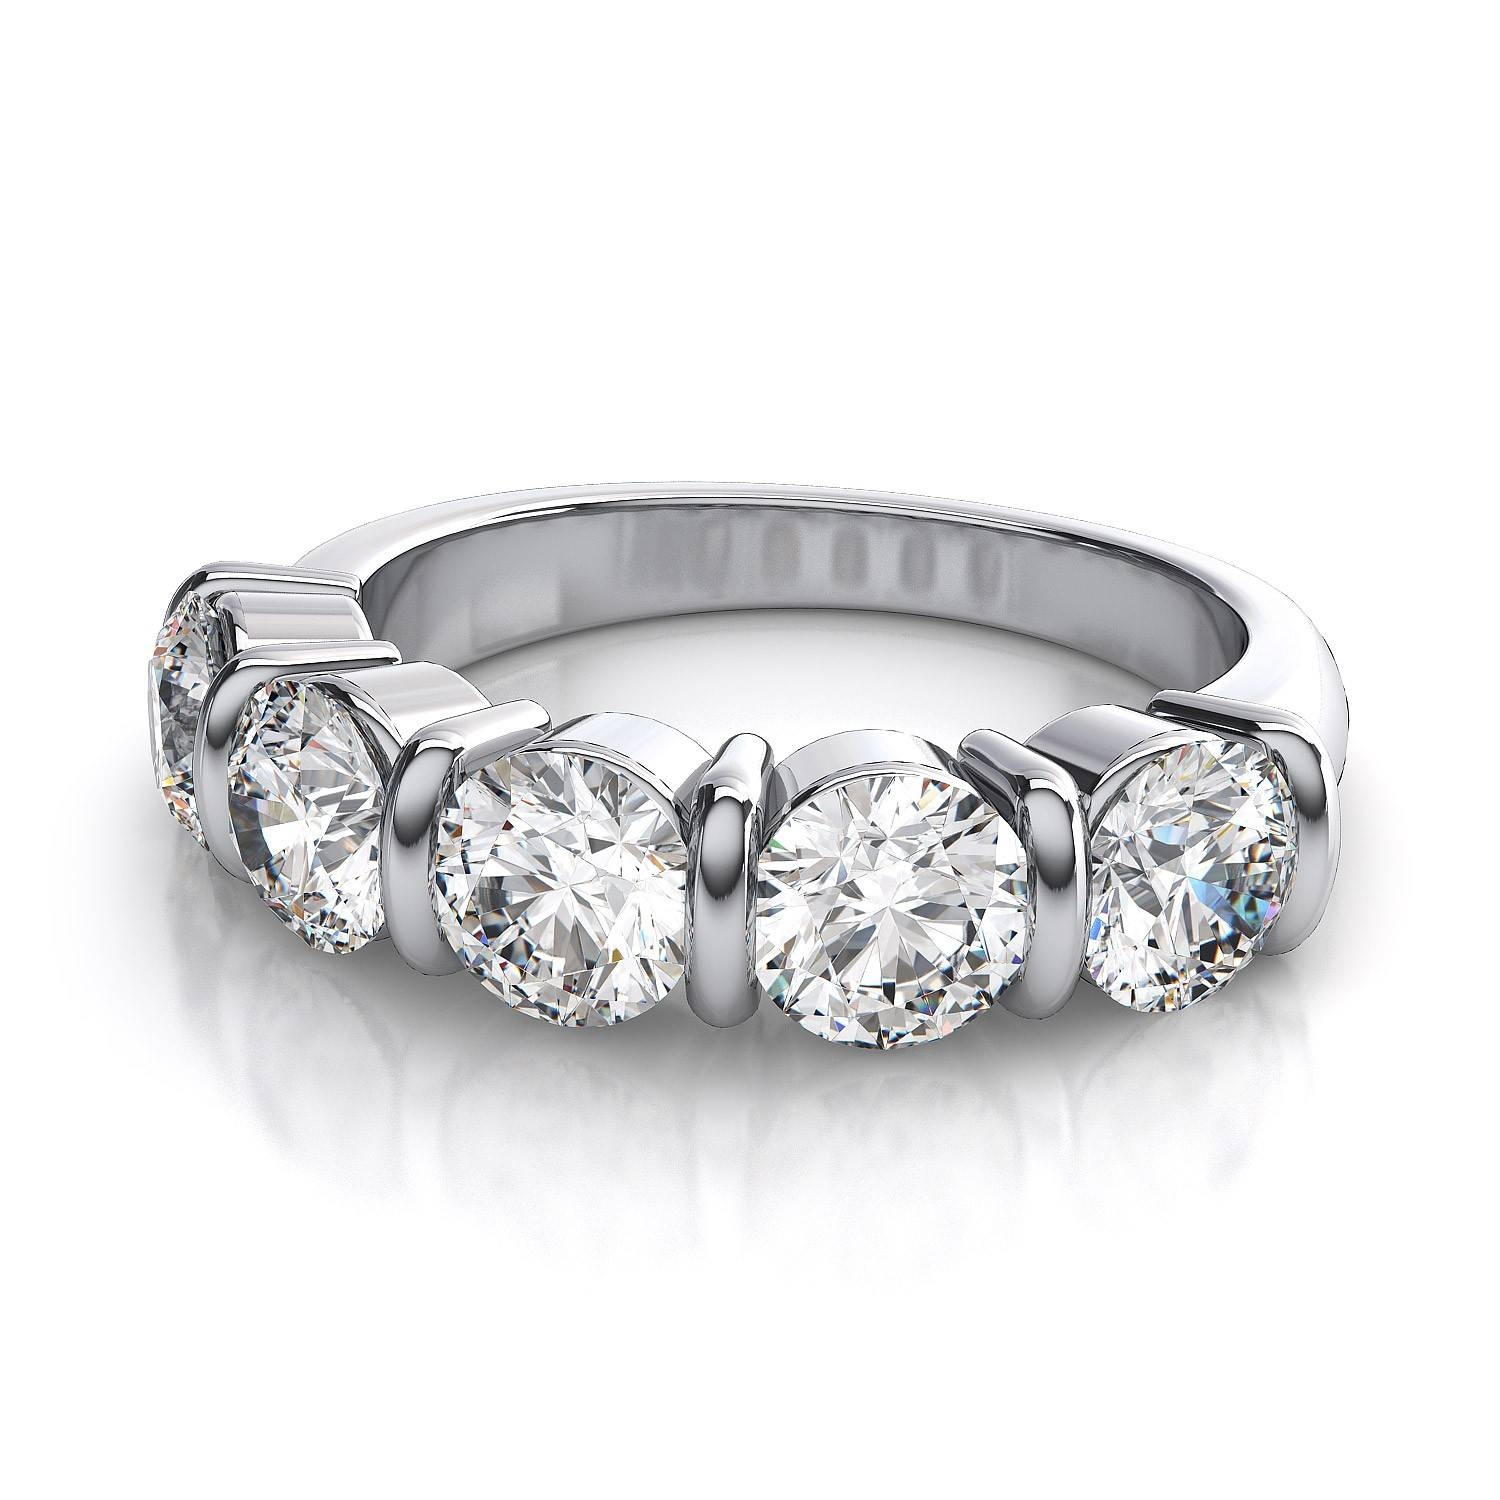 Anniversary Diamond Rings – Show Your Love Pertaining To Most Popular Diamond Wedding Anniversary Rings (View 5 of 25)